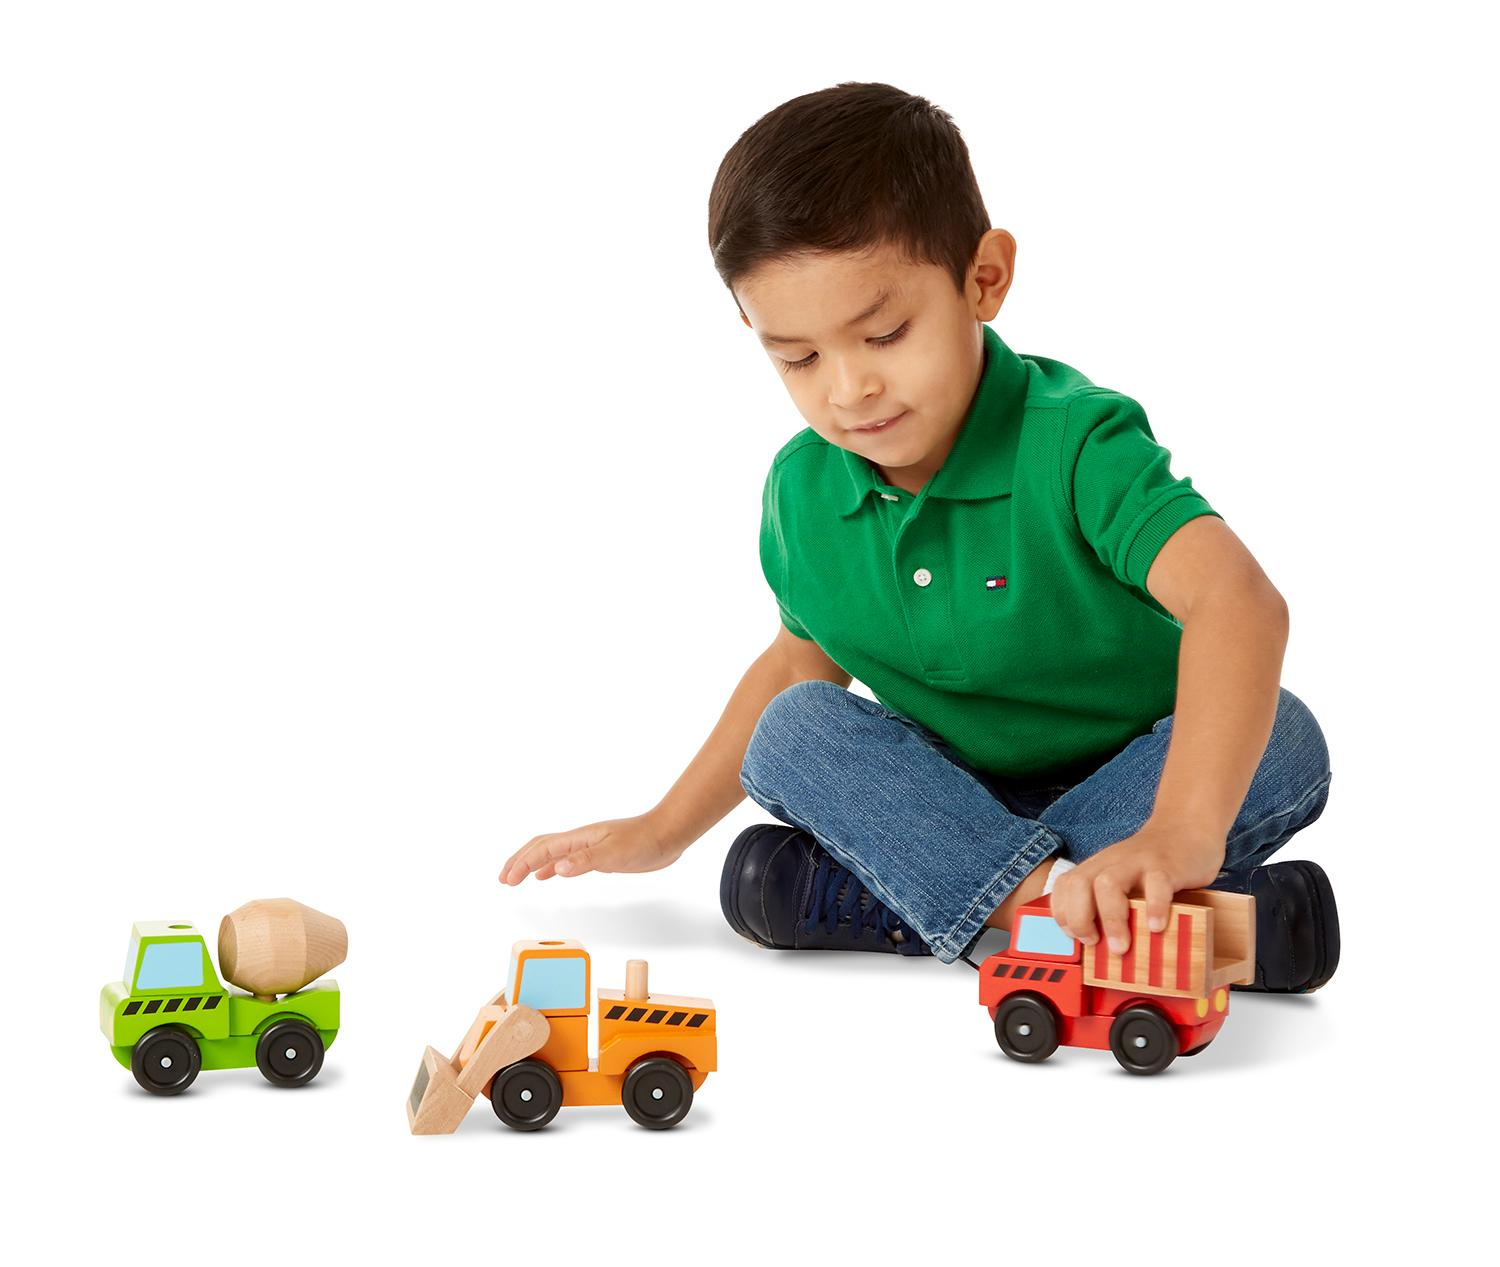 Construction Site Toys For Boys : Amazon melissa doug stacking construction vehicles